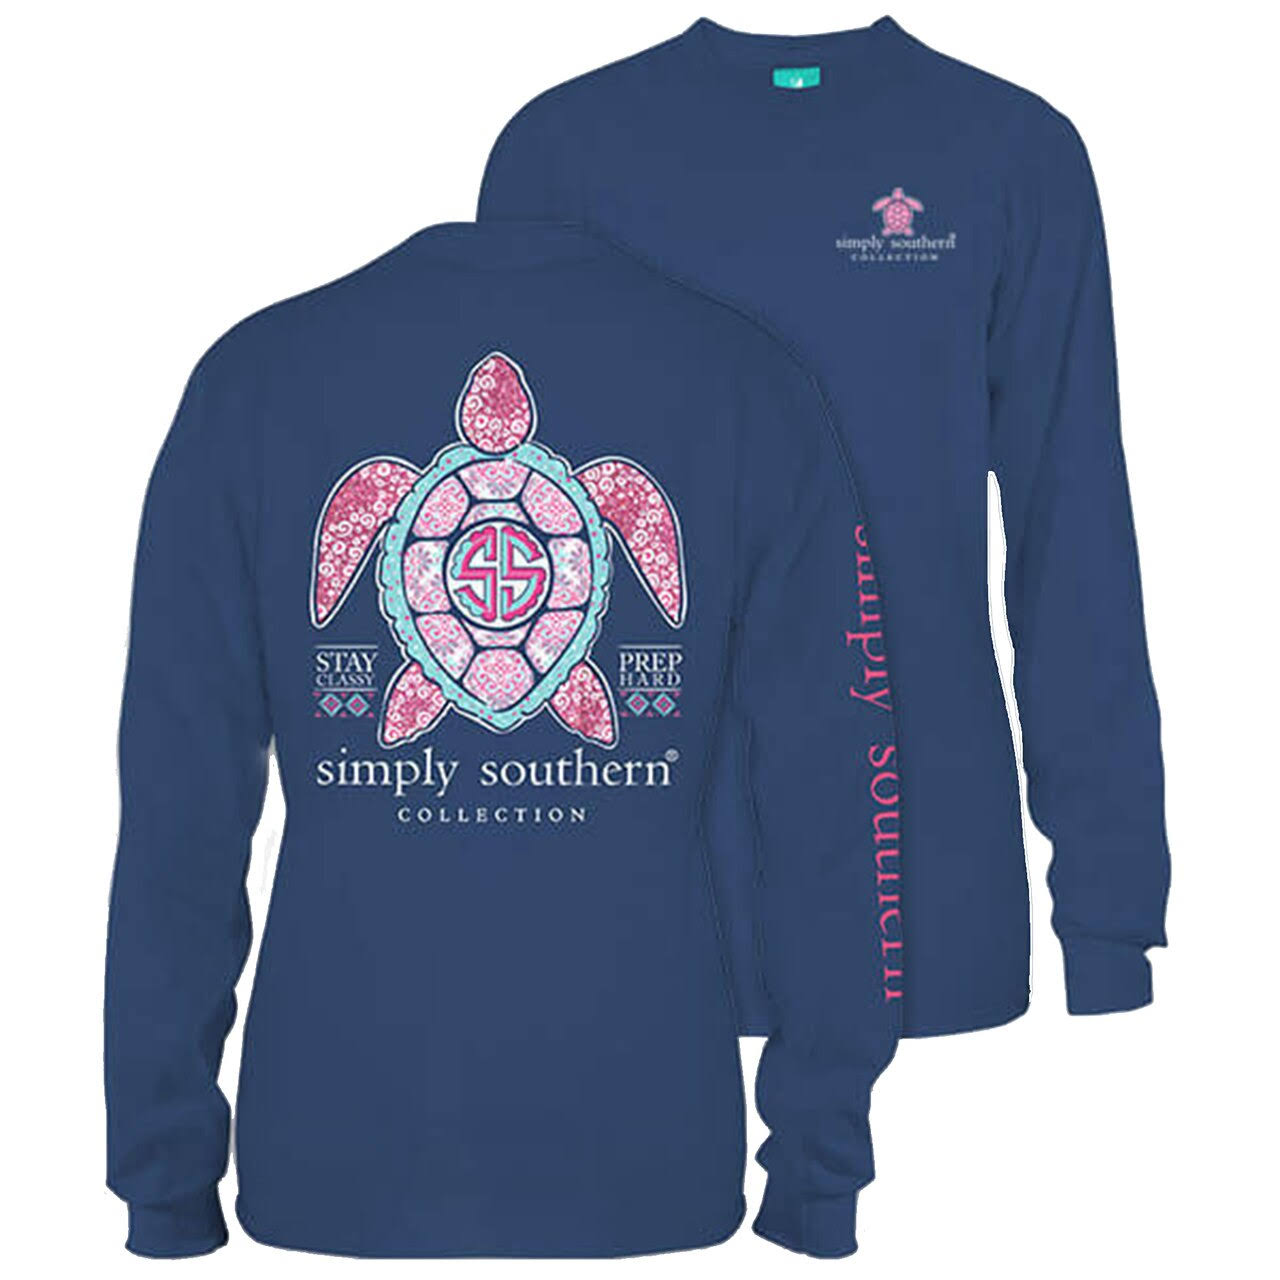 Simply Southern Princess Turtle Long Sleeve T-Shirt